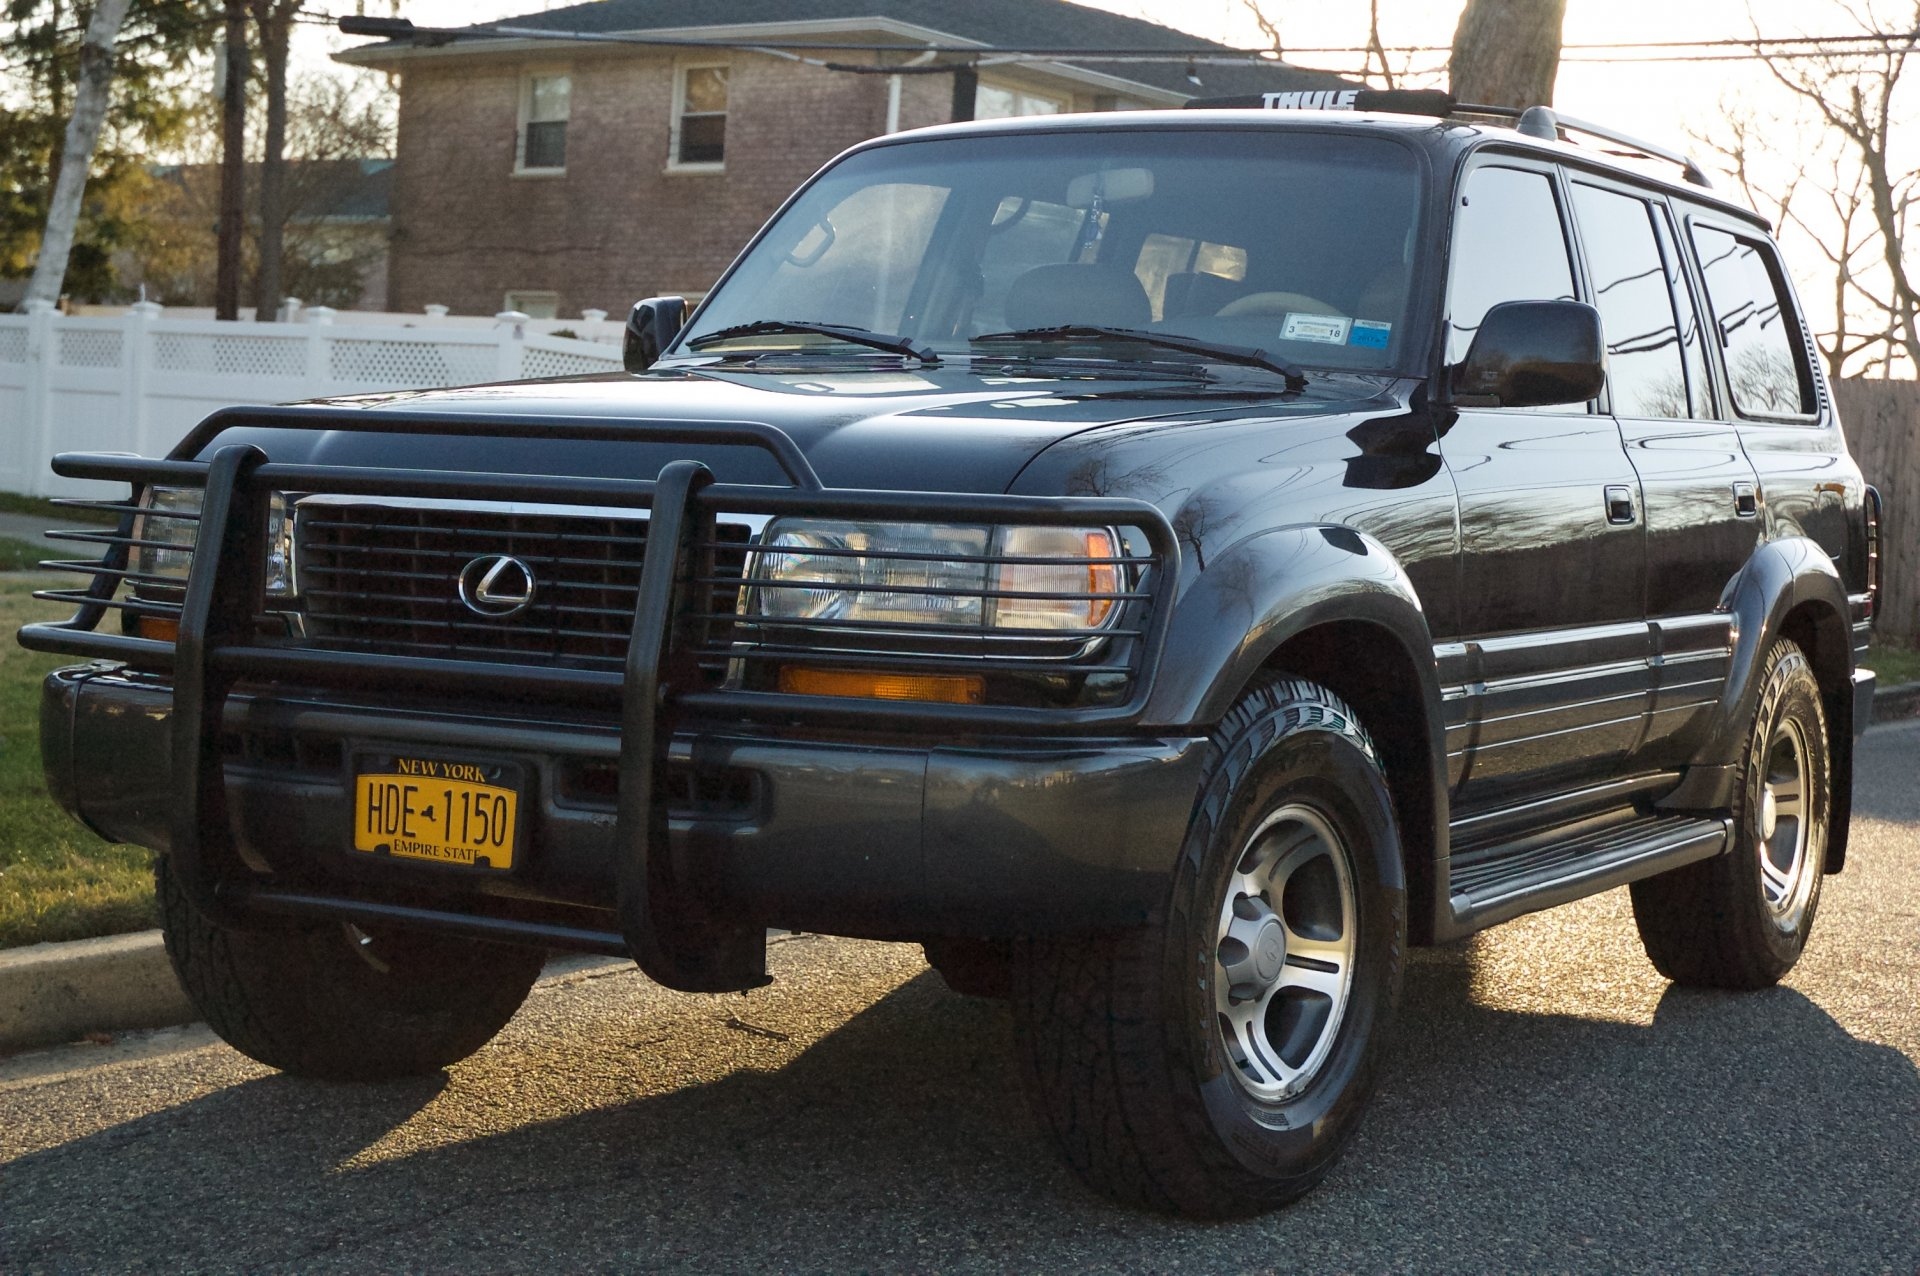 For Sale - 1996 Lexus LX450 100% Rust Free + Lockers ALL